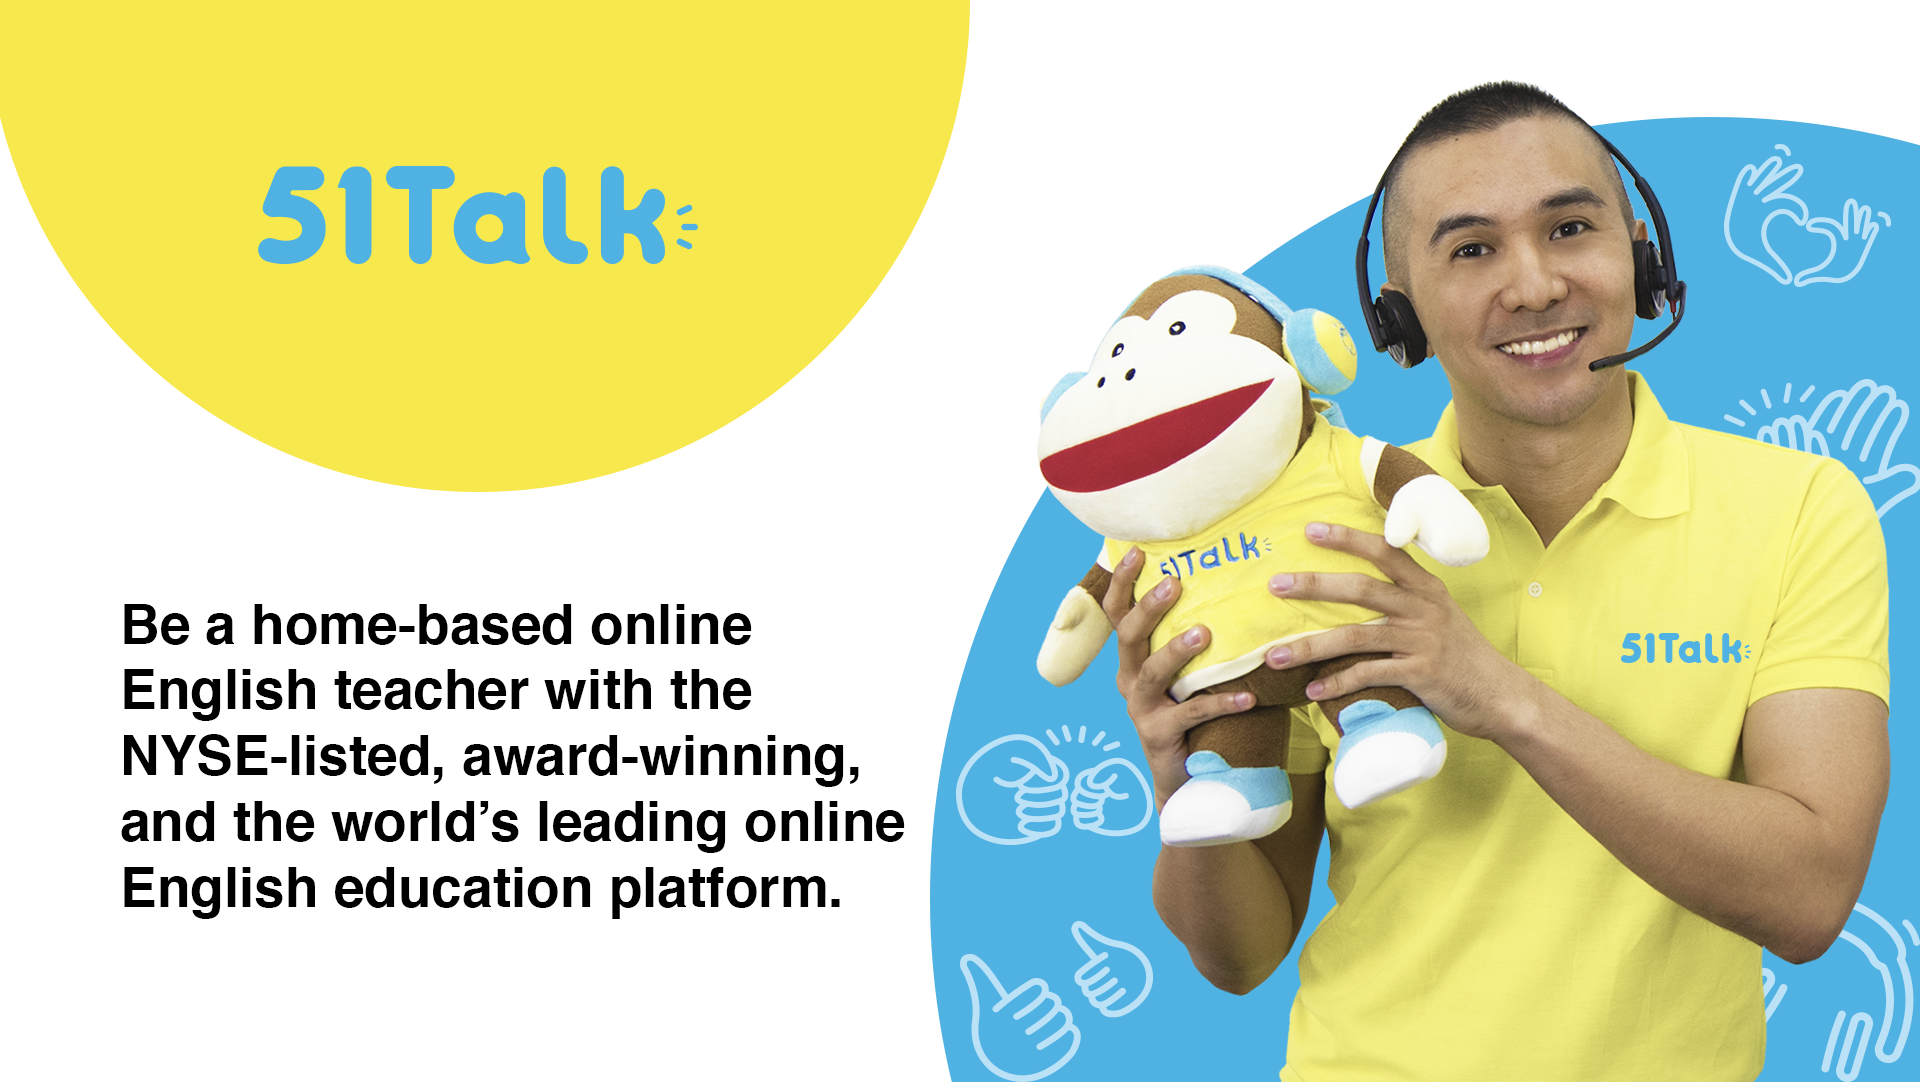 51Talk - Home-based Online English School